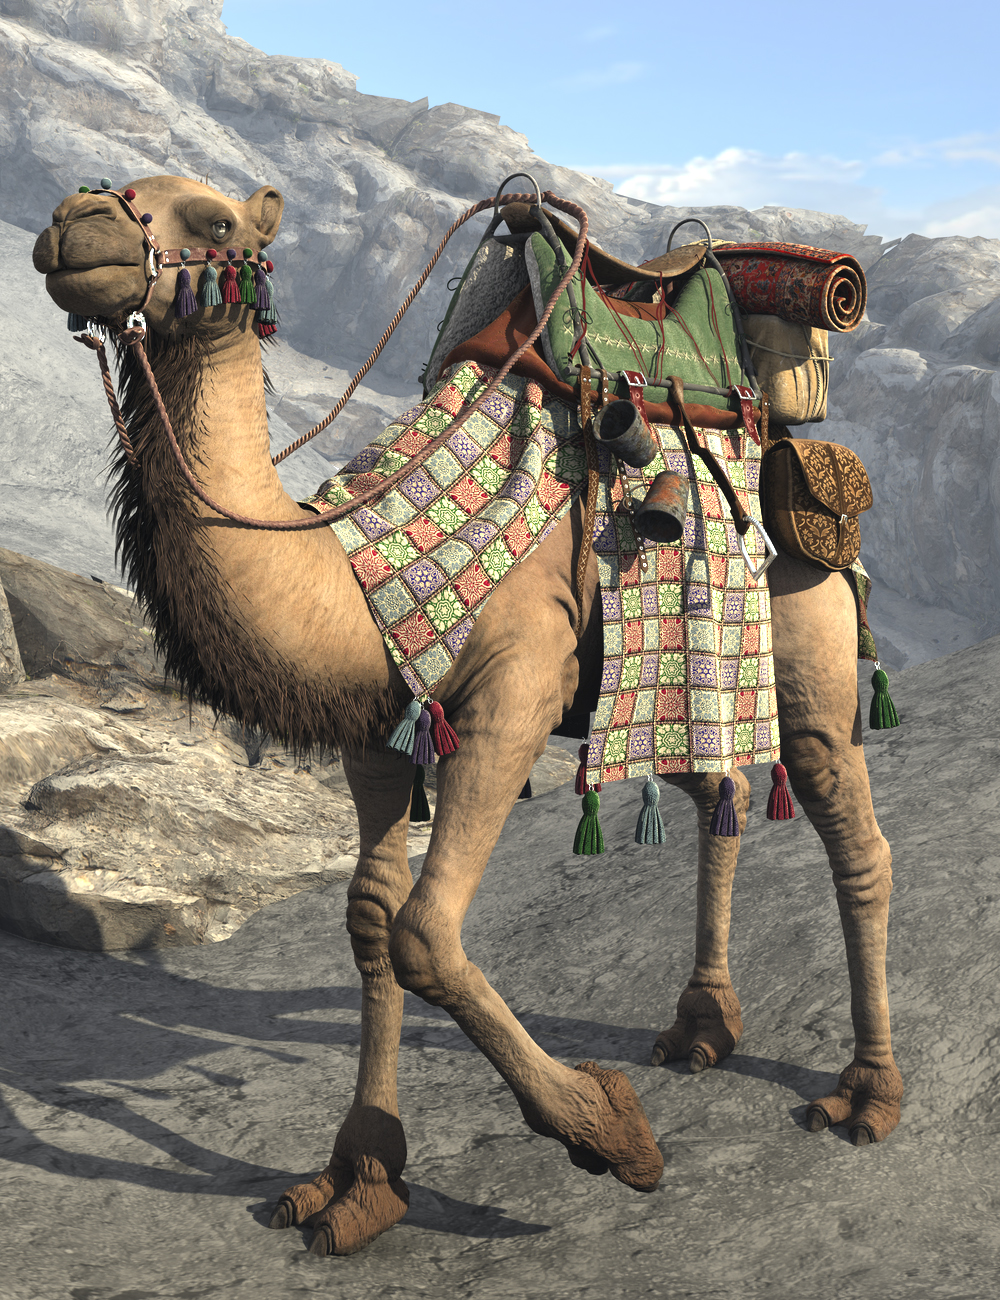 My Camel Camelia HD by: LuthbellinaLuthbel, 3D Models by Daz 3D